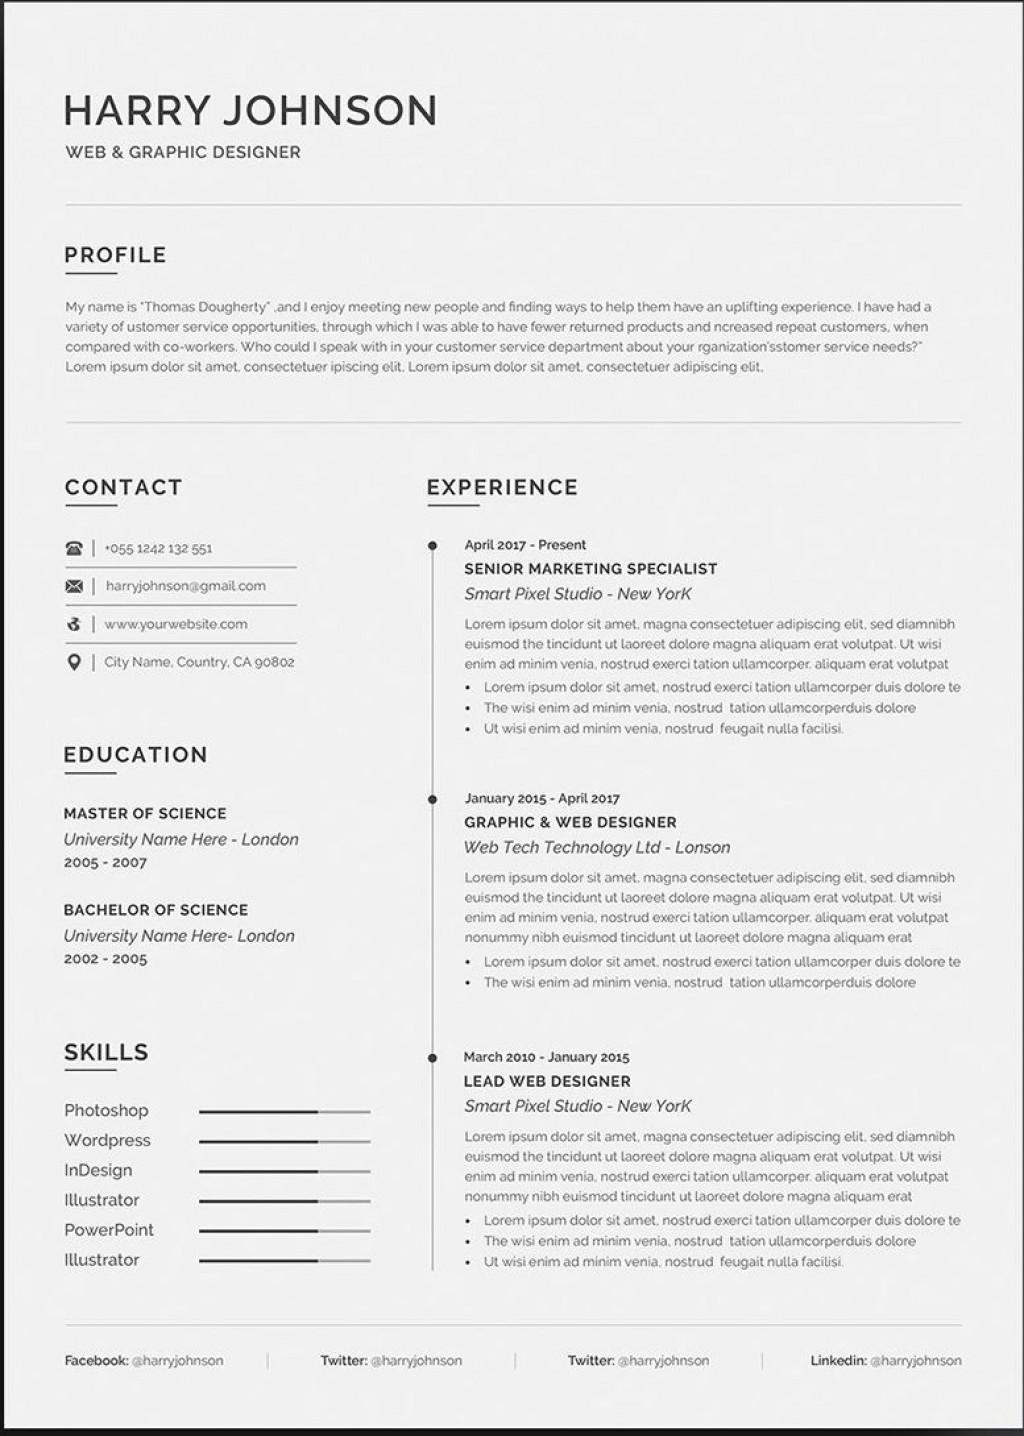 003 Striking Professional Resume Template Word High Definition  Microsoft Download Free 2010 2019Large